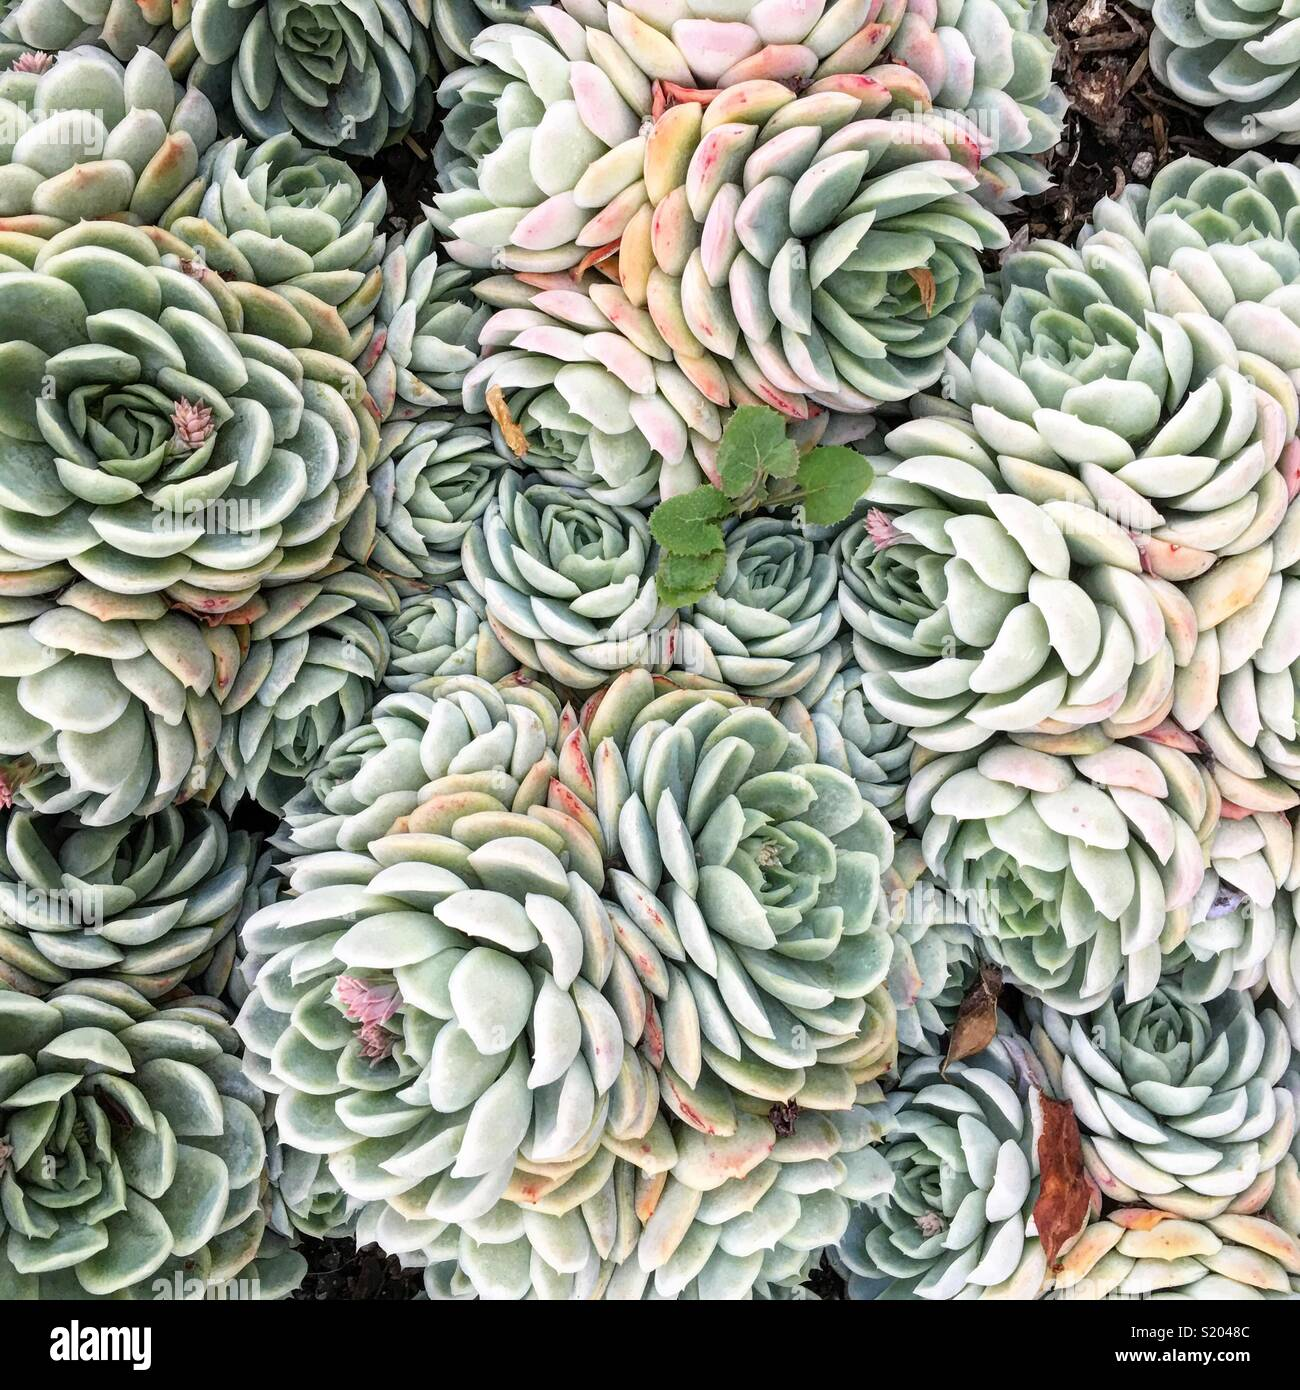 Pastel colored desert succulents grow together. - Stock Image